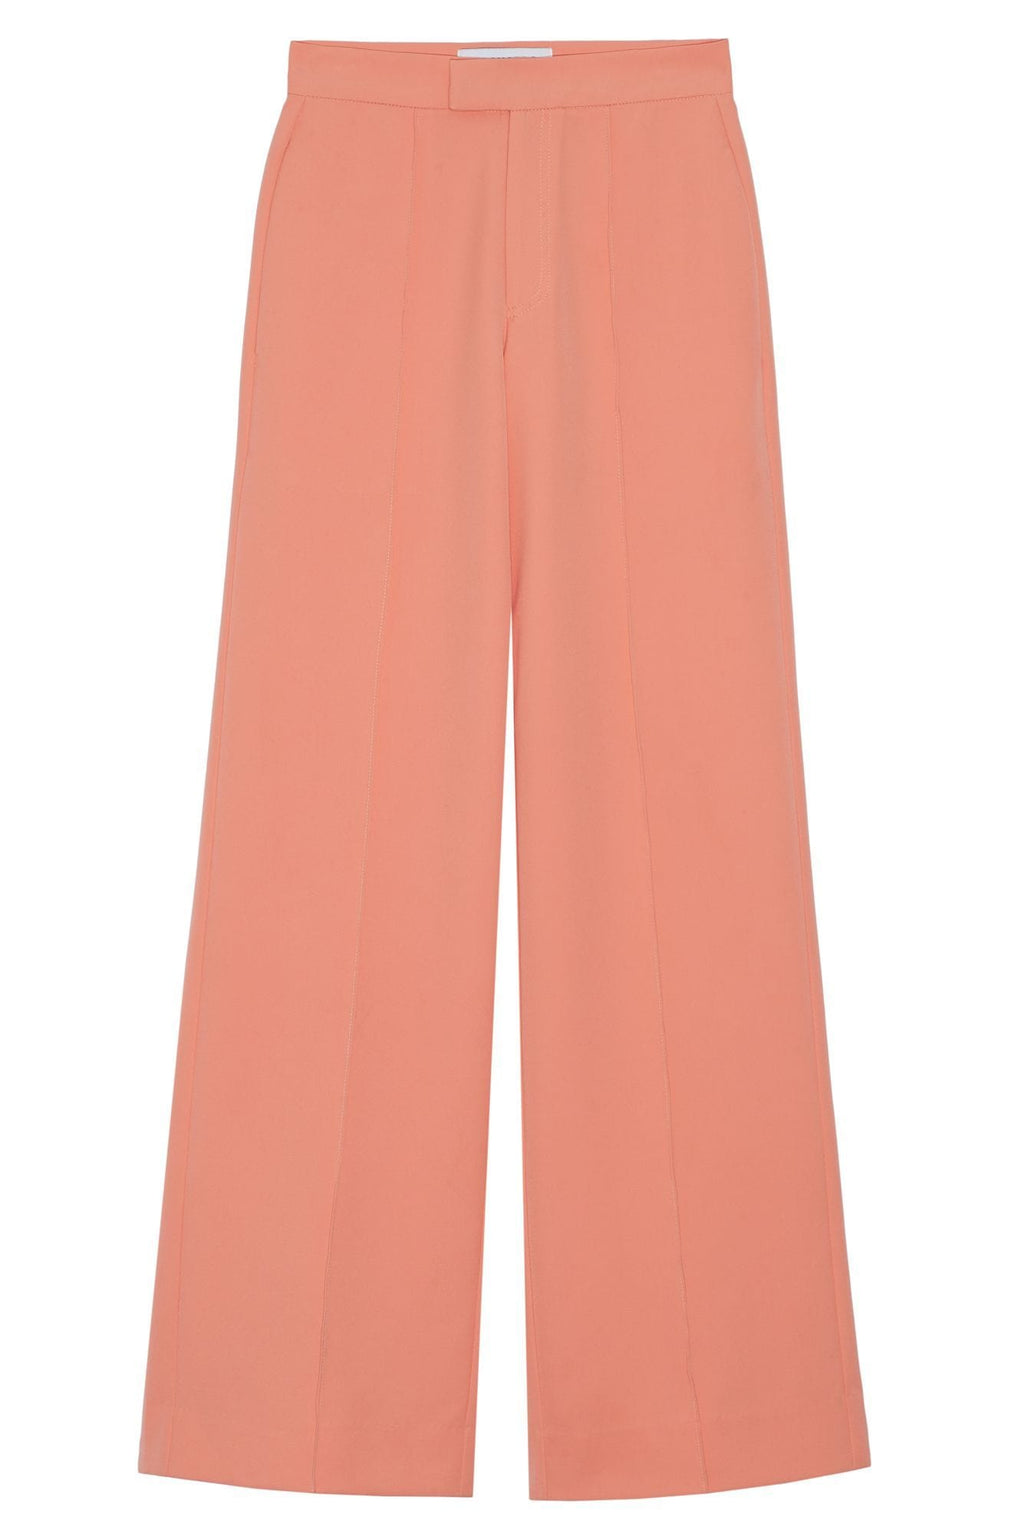 women's peach wide leg pants